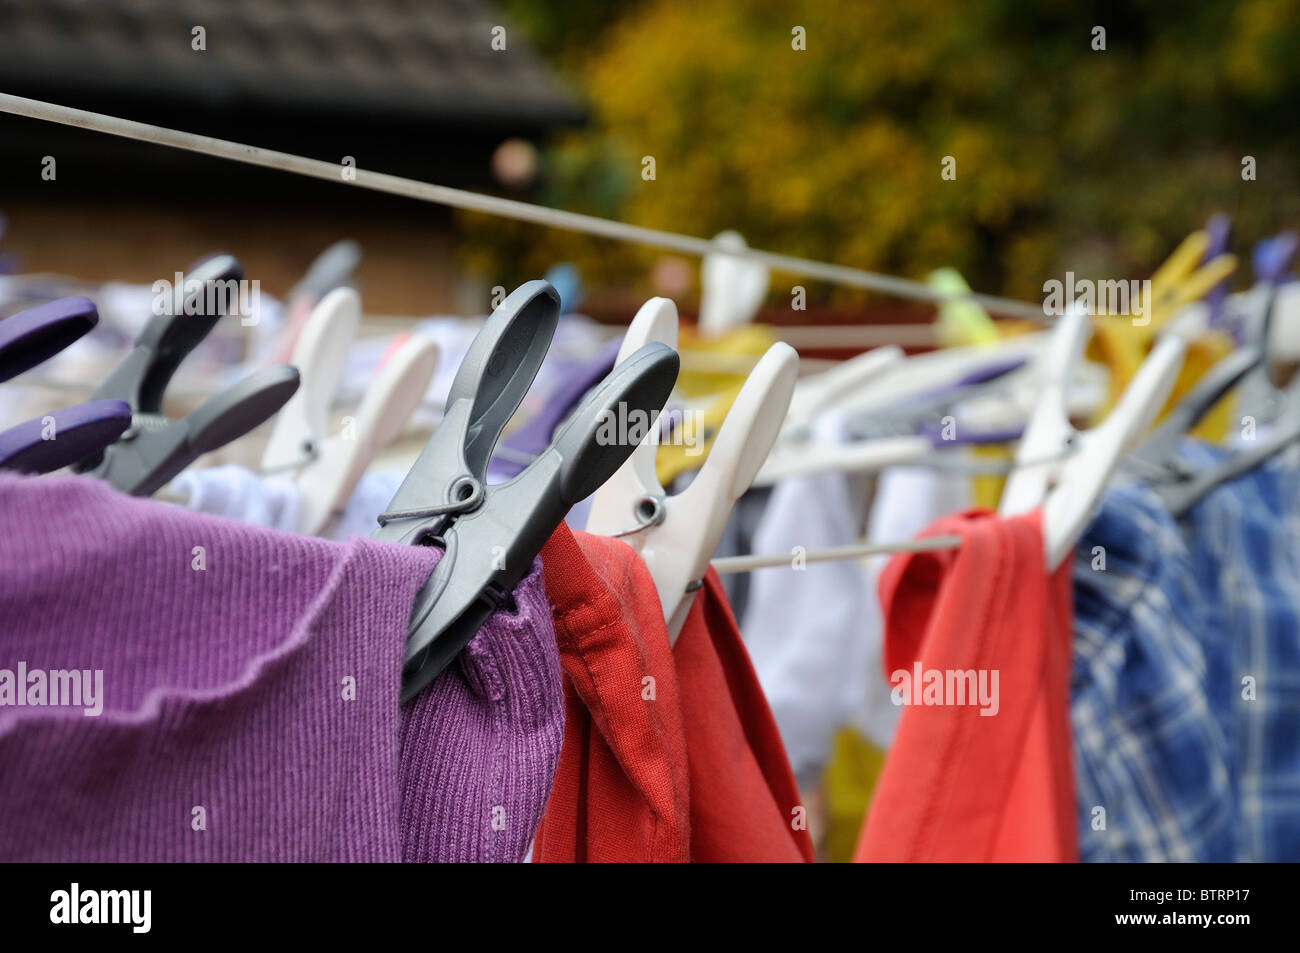 washing pegged out to dry - Stock Image